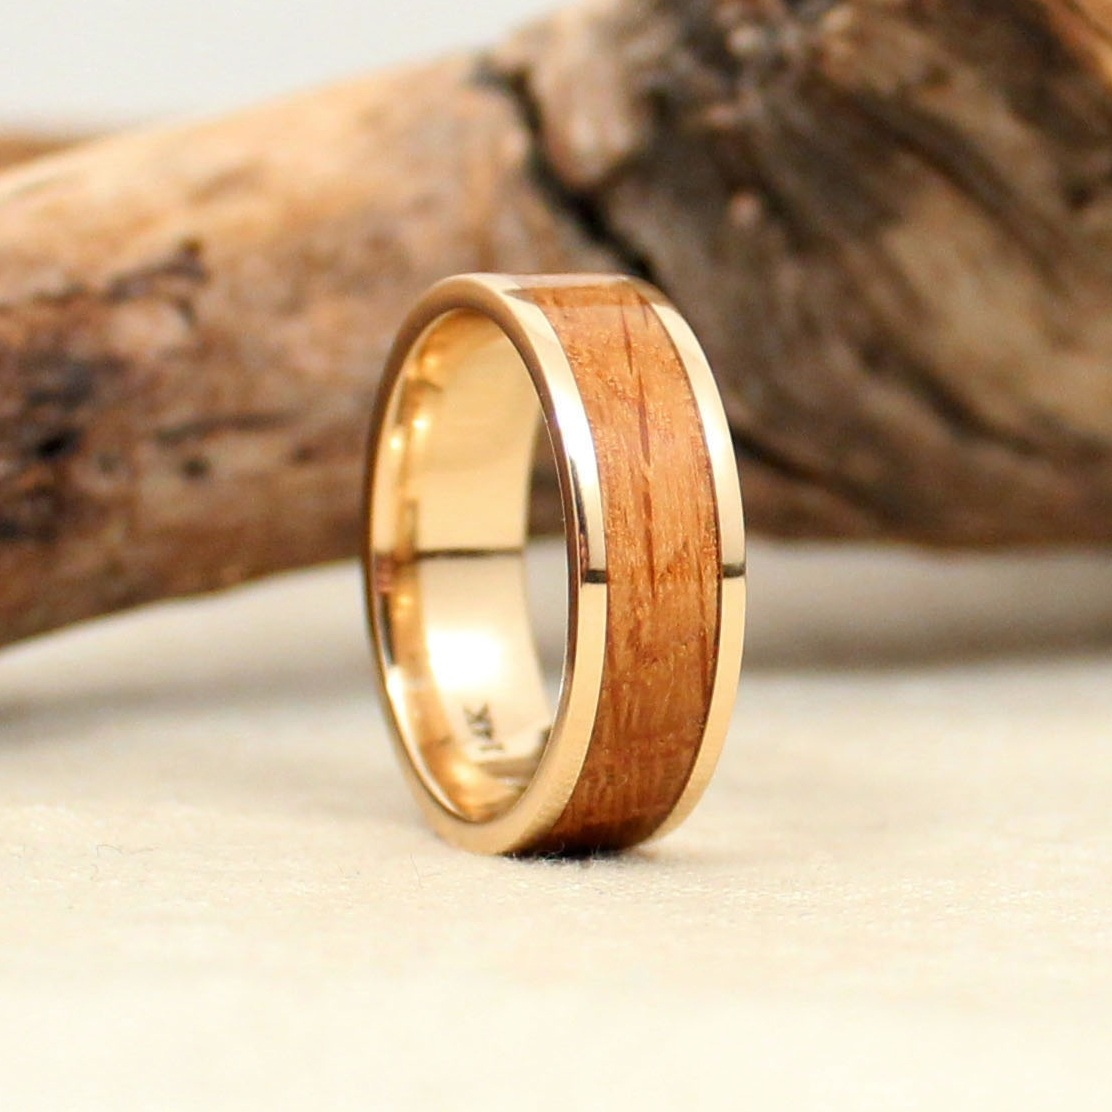 whiskey-barrel-wedding-ring-oak-gold-band-wedgewood.jpg